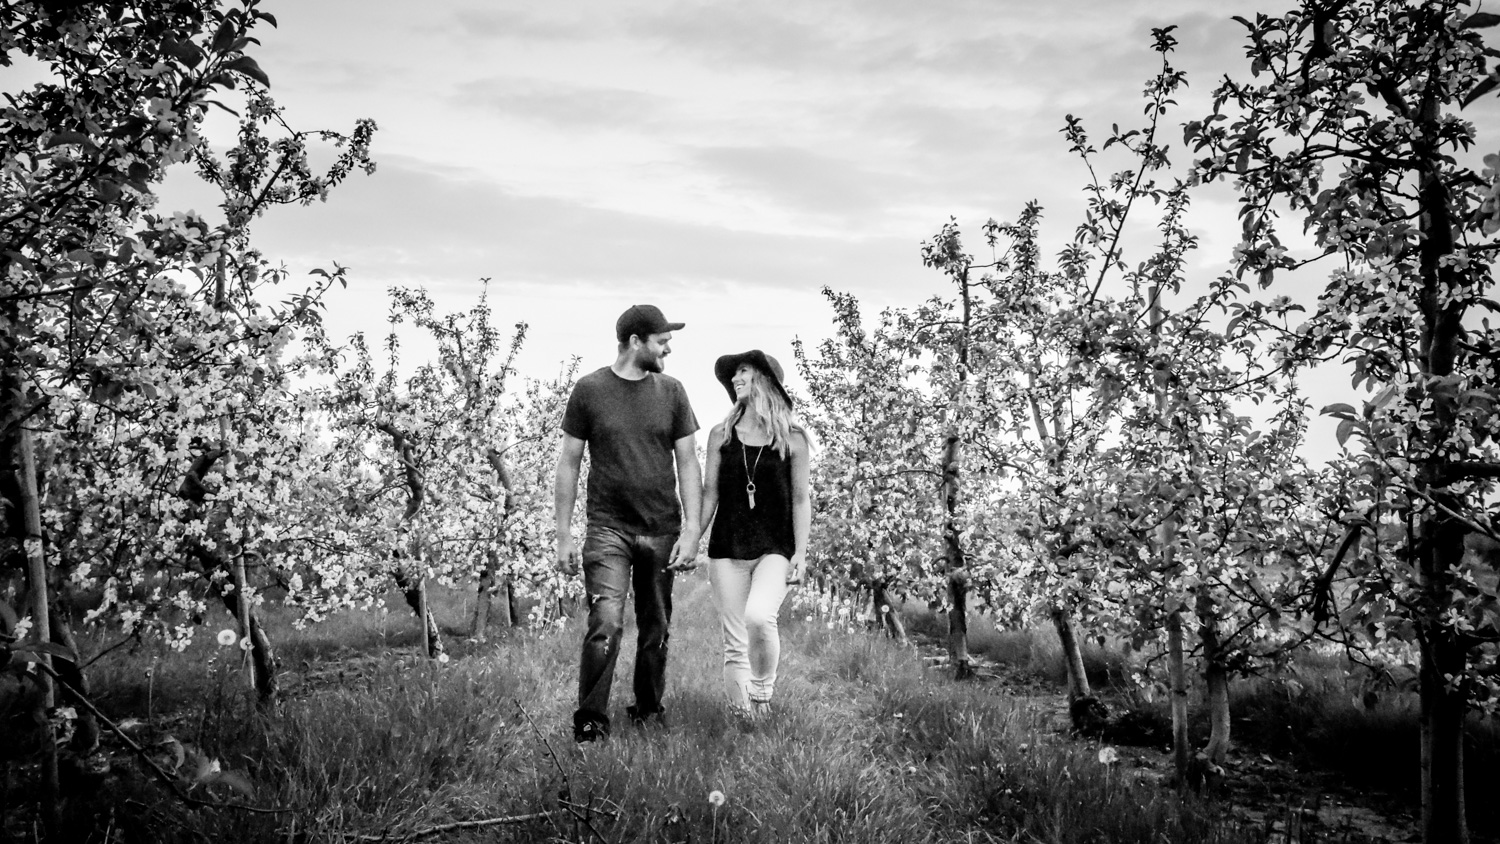 Couples photo walking between blossoming trees - Fun Ways to Photograph Couples That are a Bit Awkward